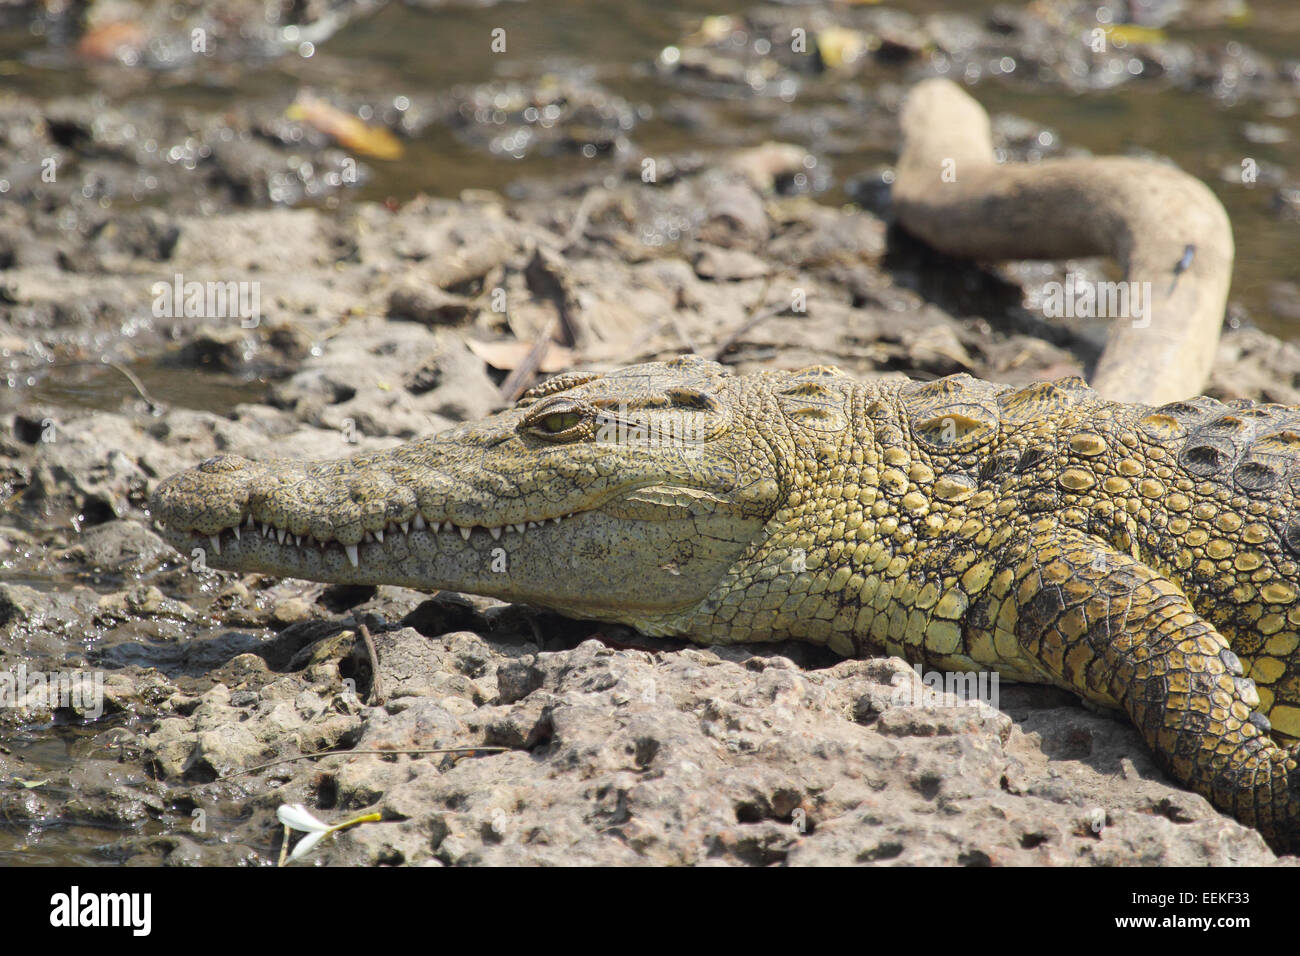 A young Nile Crocodile, Crocodylus niloticus, near the water in Serengeti National Park, Tanzania Stock Photo